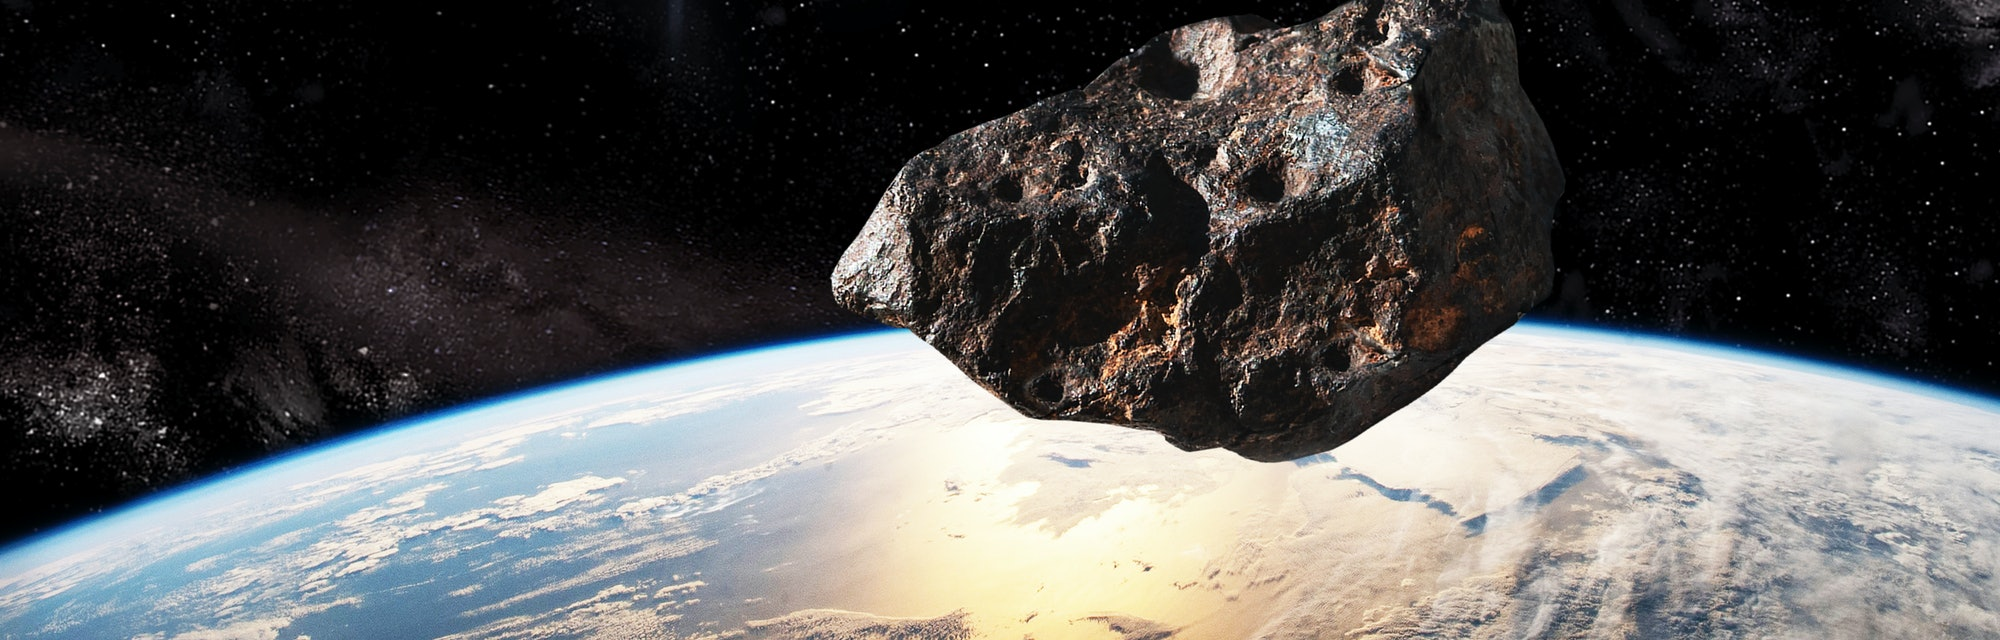 Where: Studio/office – Chino Hills, CA USA When: 6-1-2020 Who/What: The represented asteroid is my s...